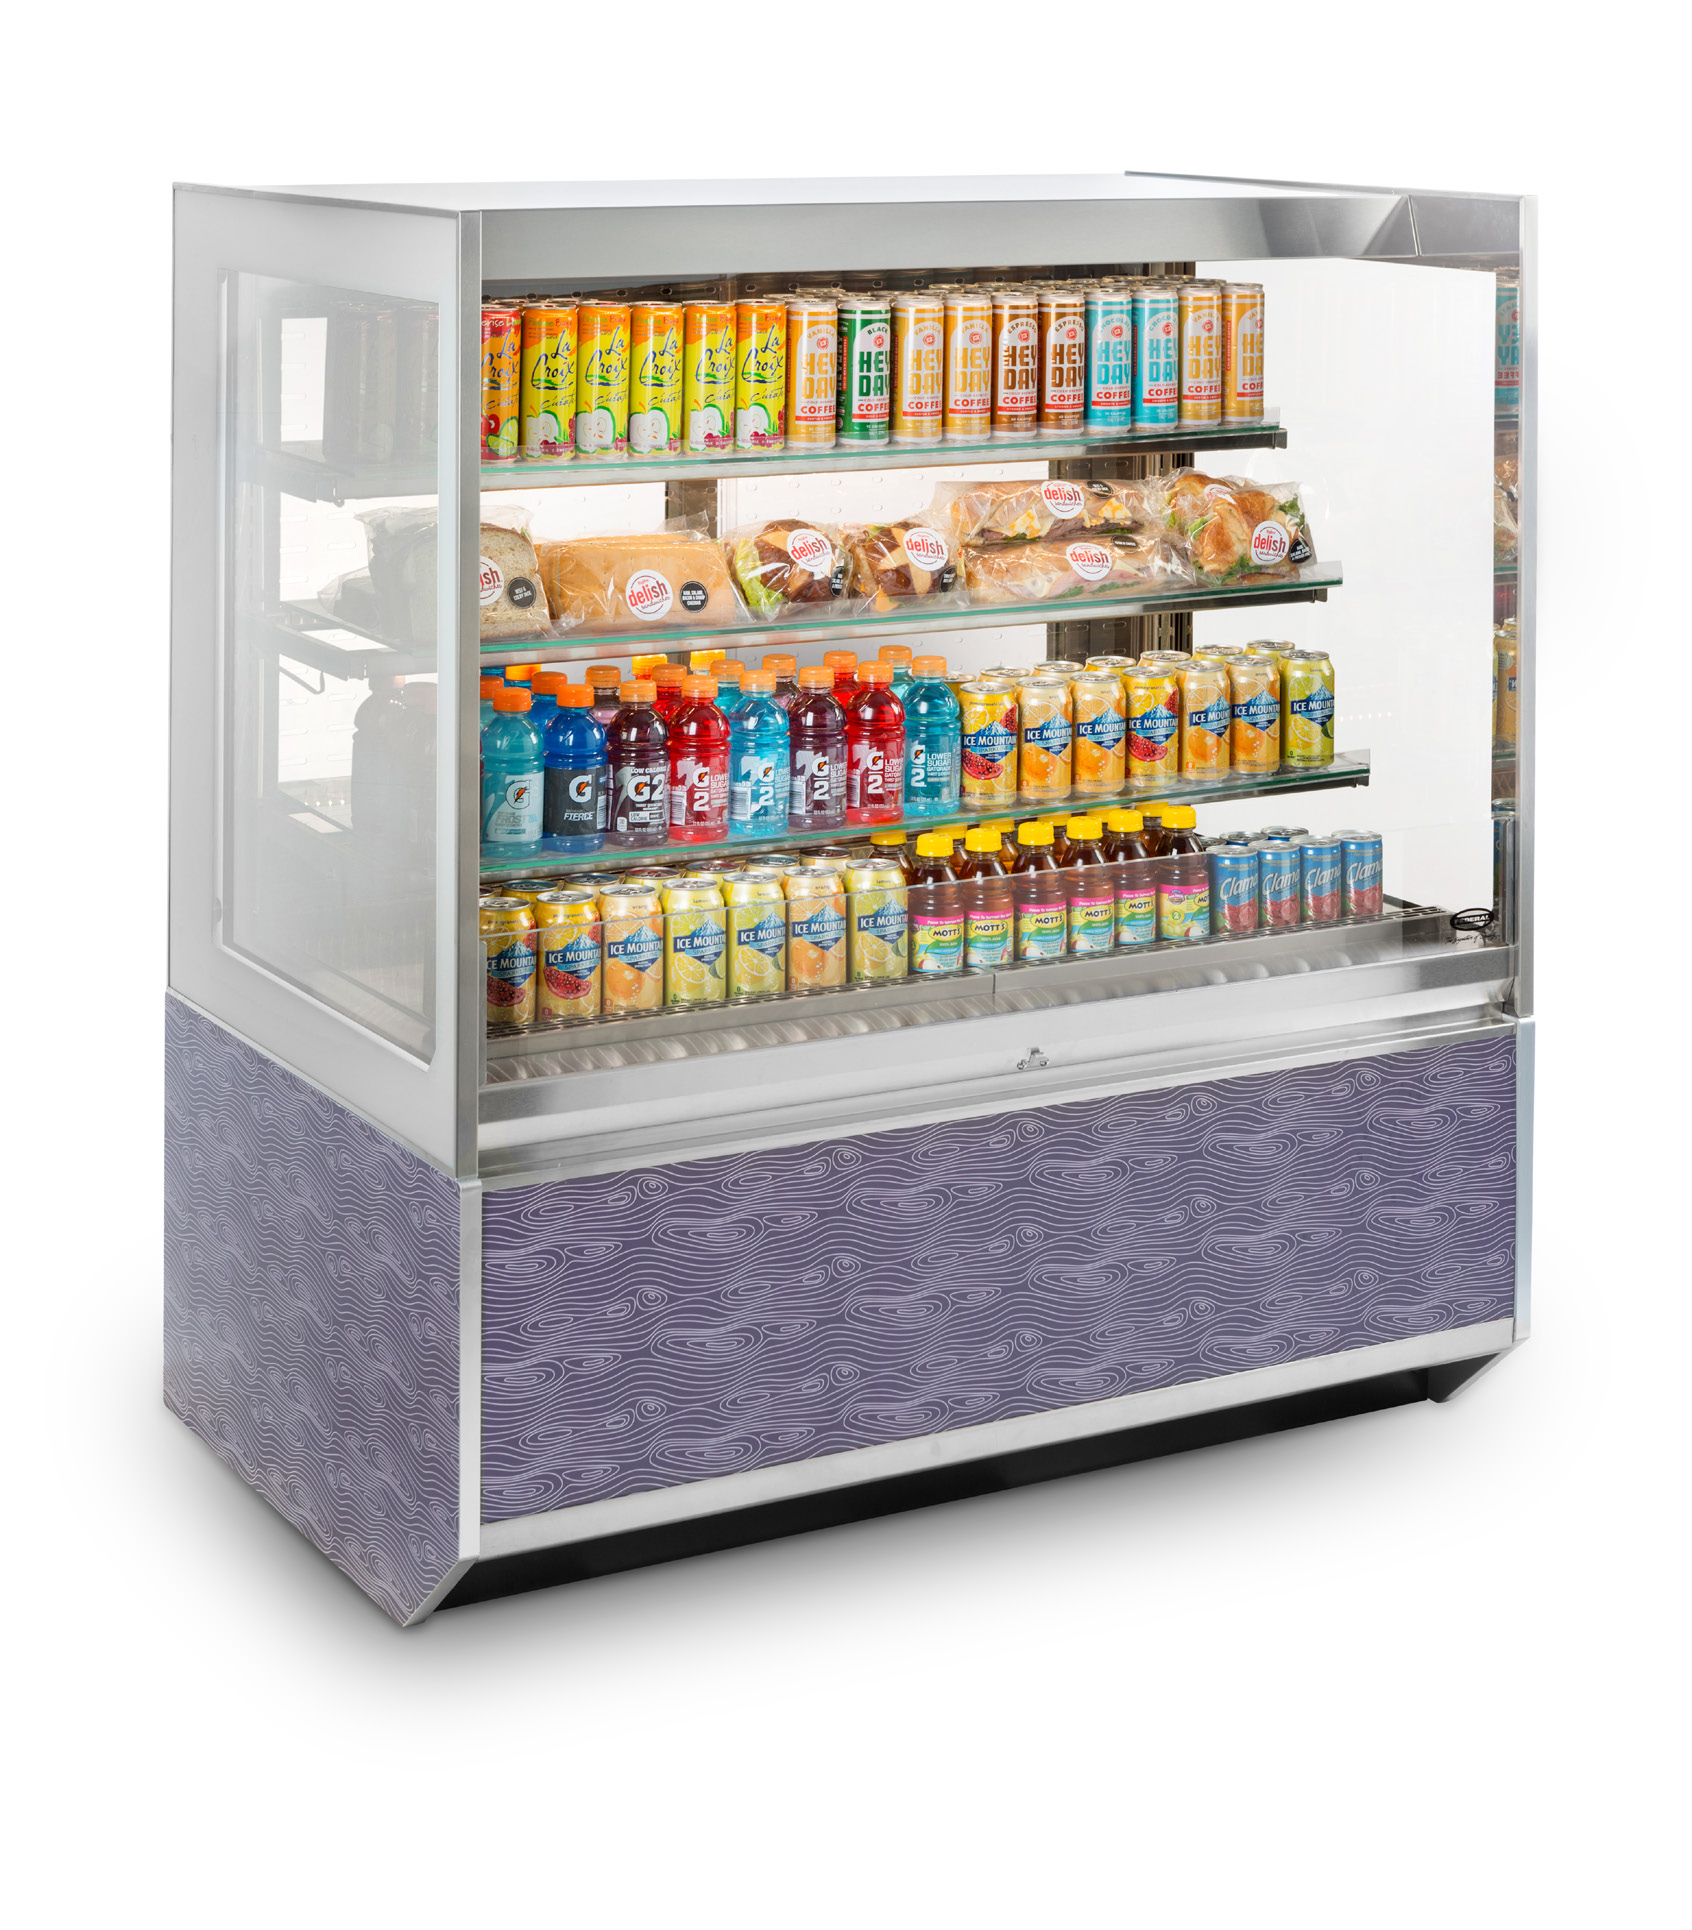 ITRSS3626-B18 Italian Glass Refrigerated Self-Serve Merchandiser